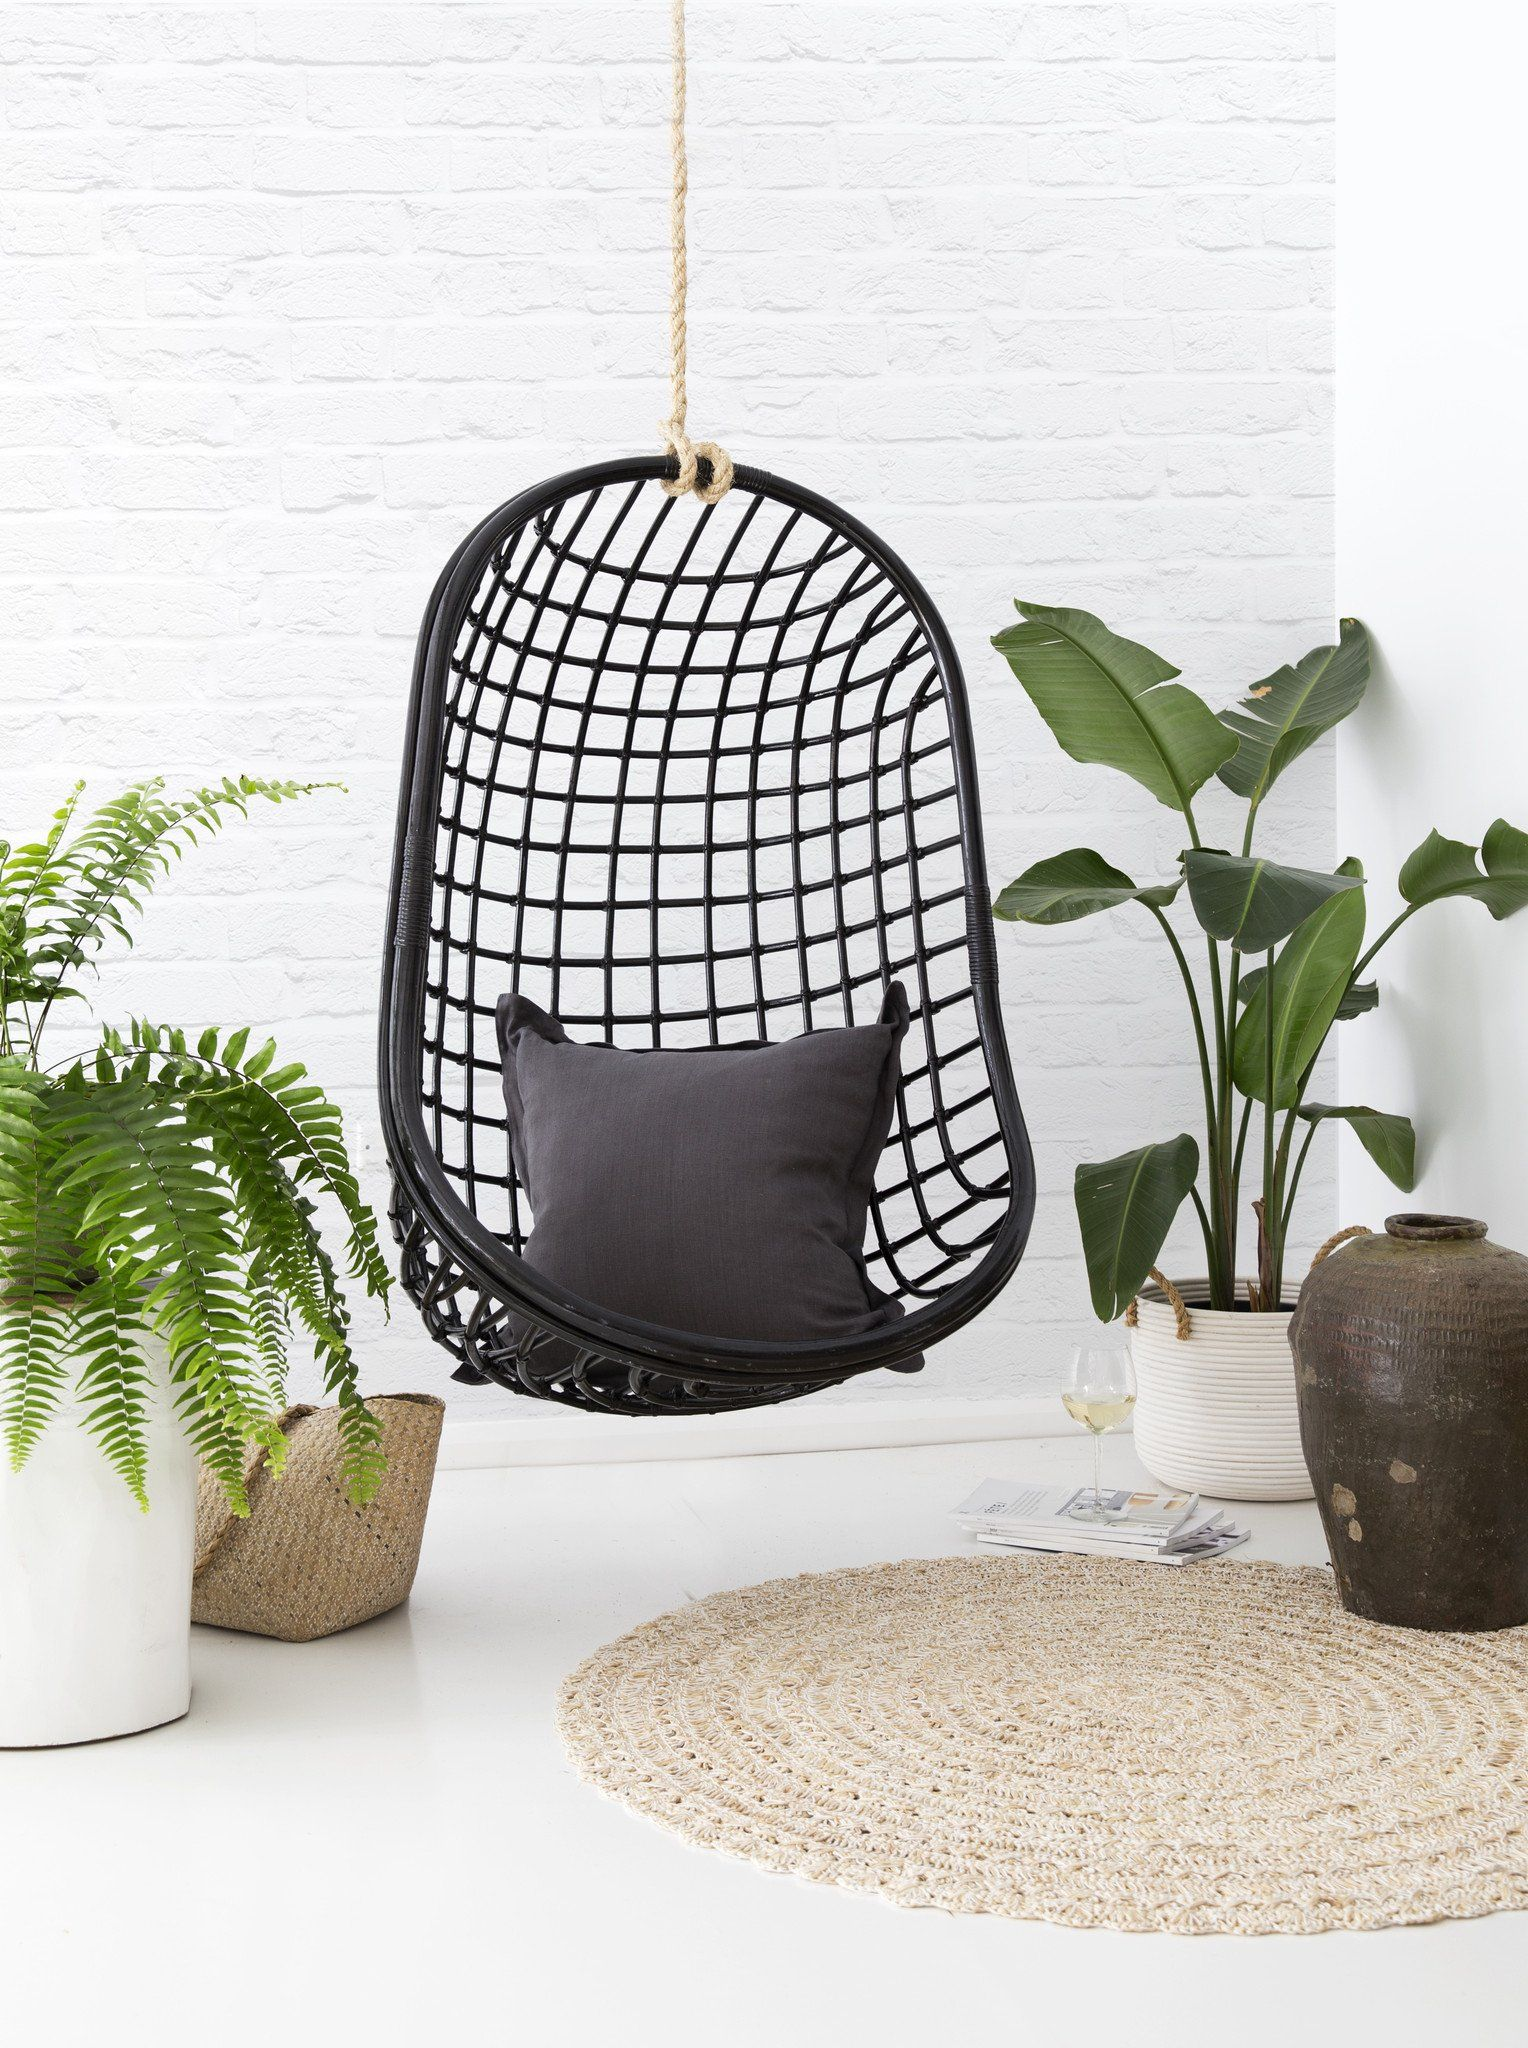 Coco hanging chair september hanging chair indoor